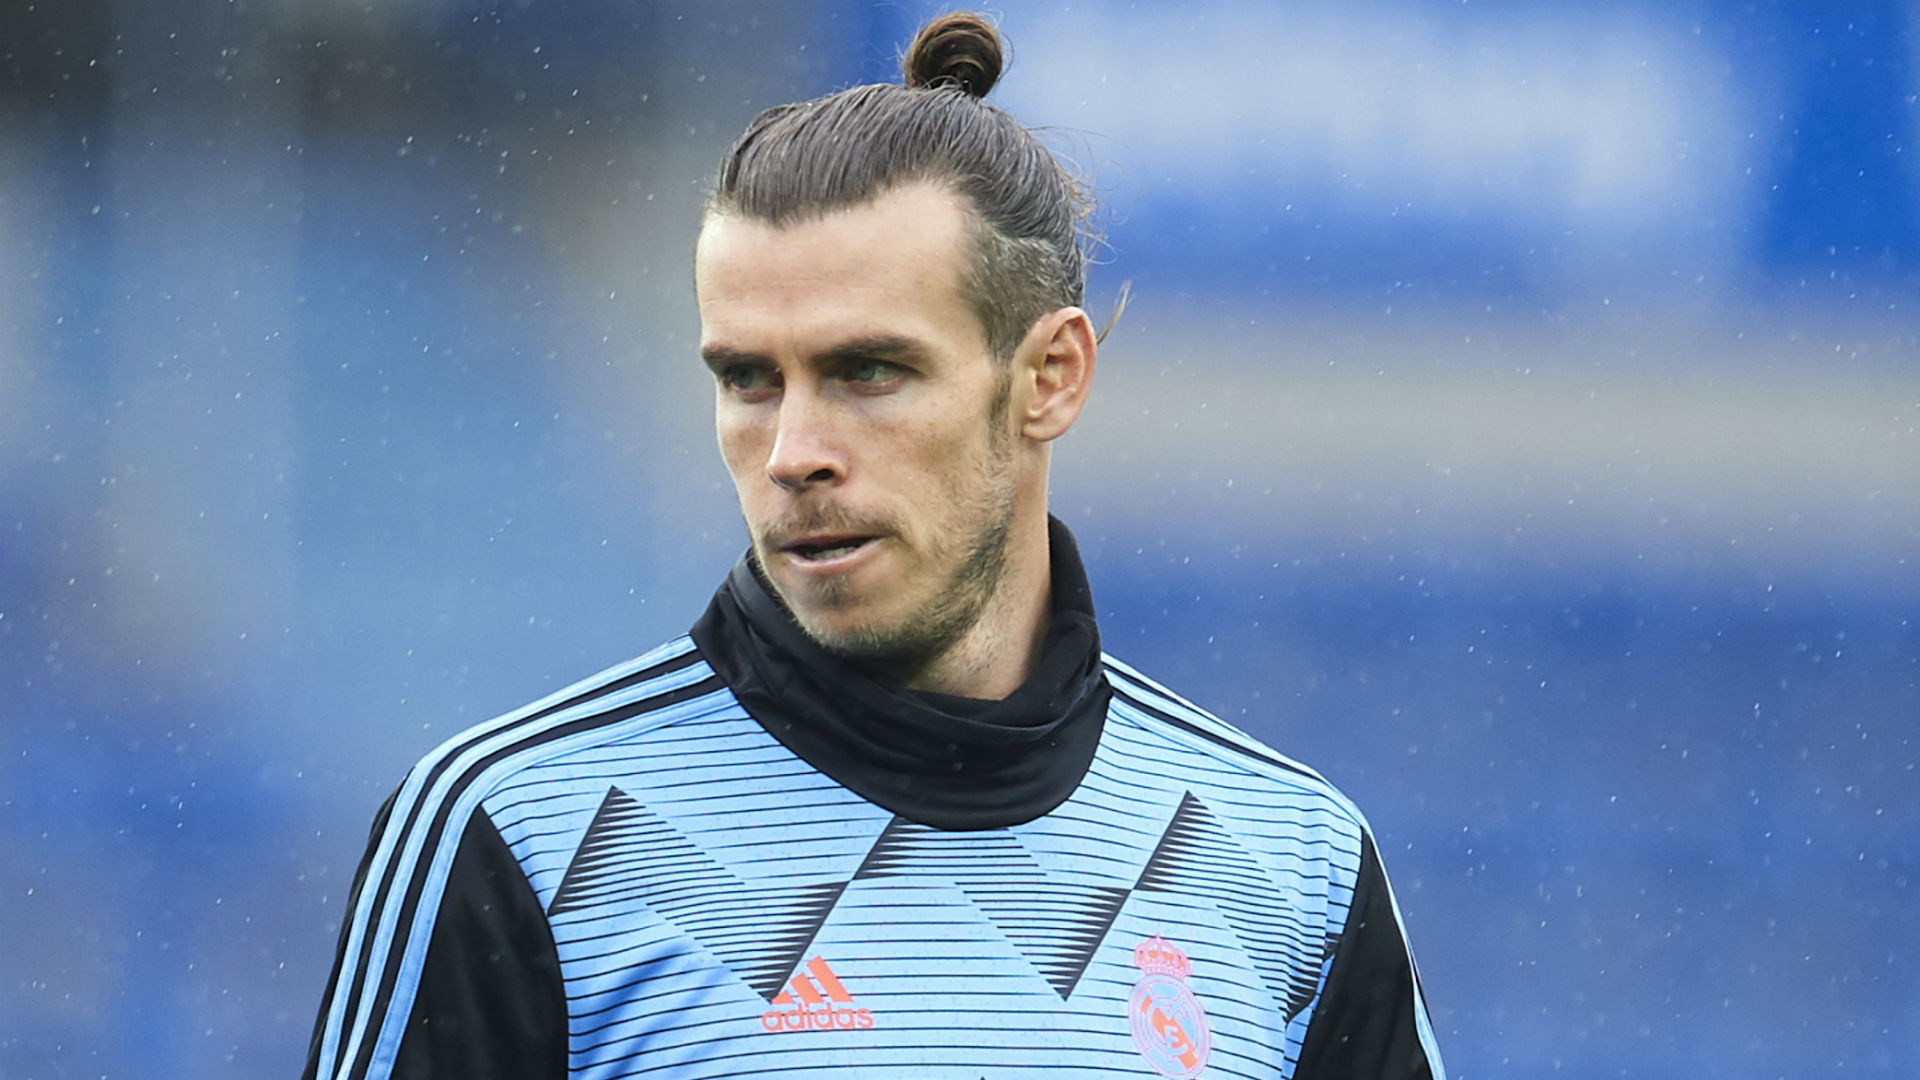 Gareth Bale's China move collapsed after Madrid asked for transfer fee - Jiangsu coach